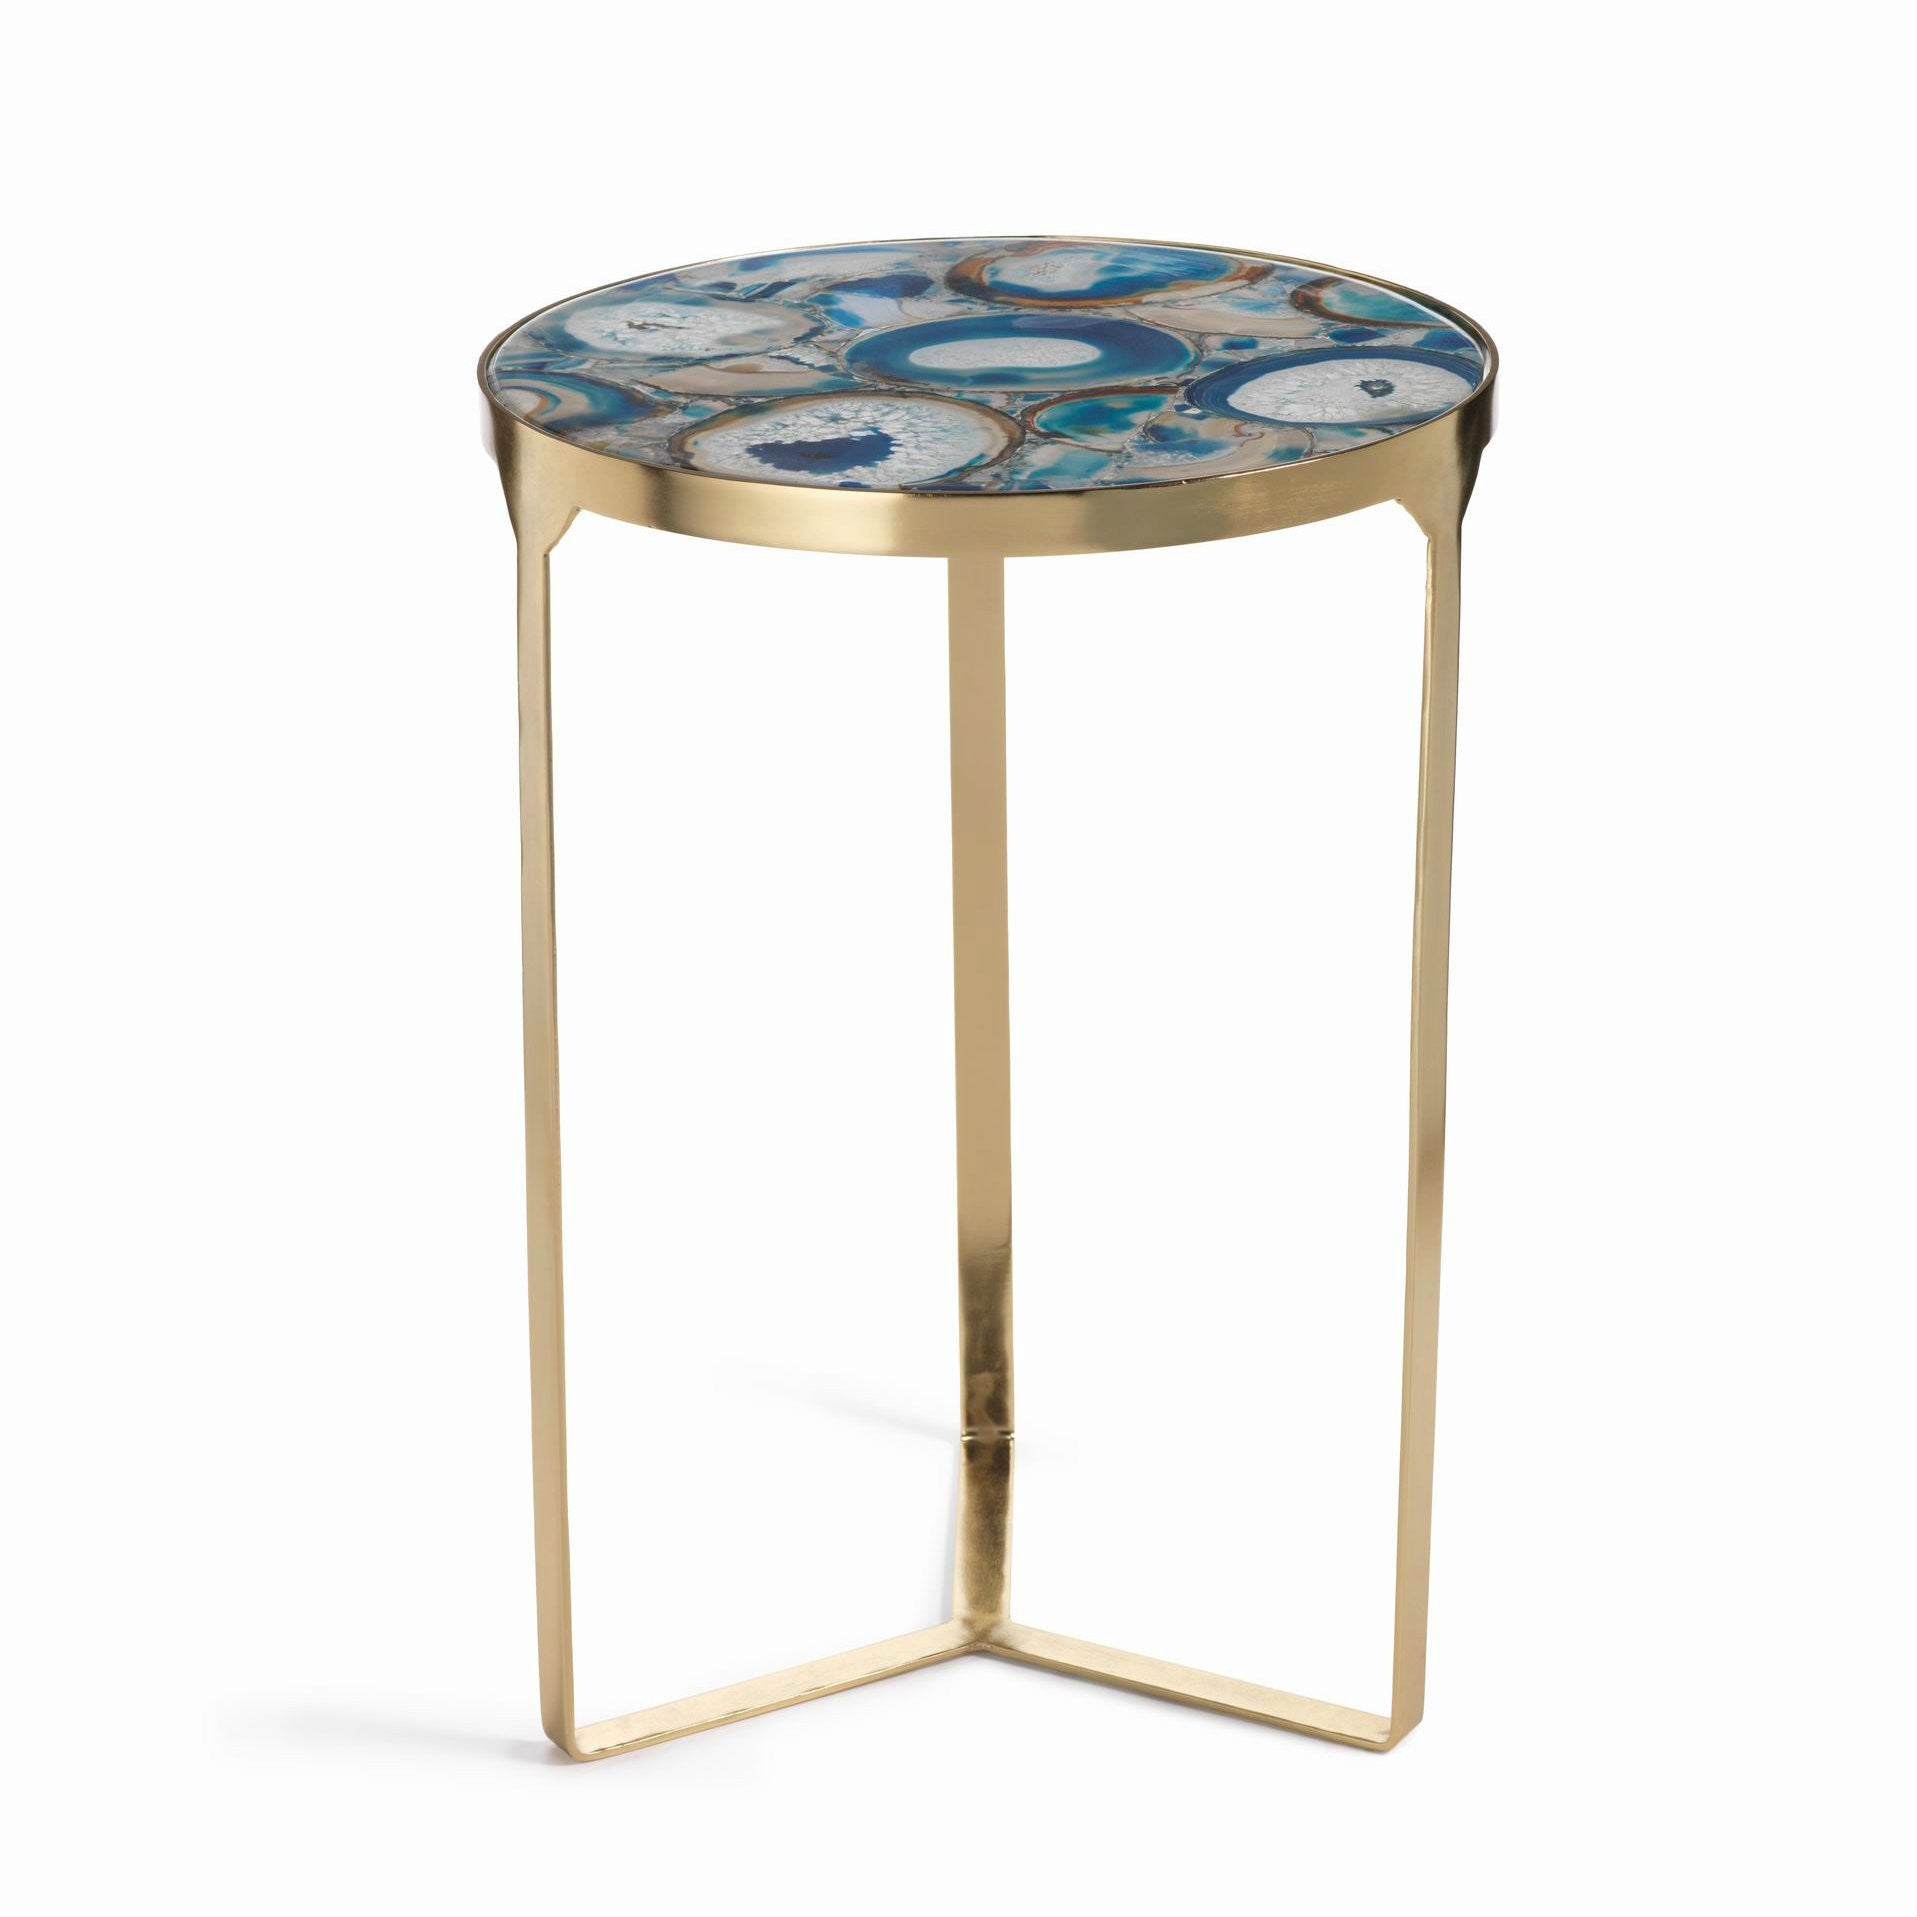 La Sardaigne Blue Agate End Table -  - CARLYLE AVENUE - 1